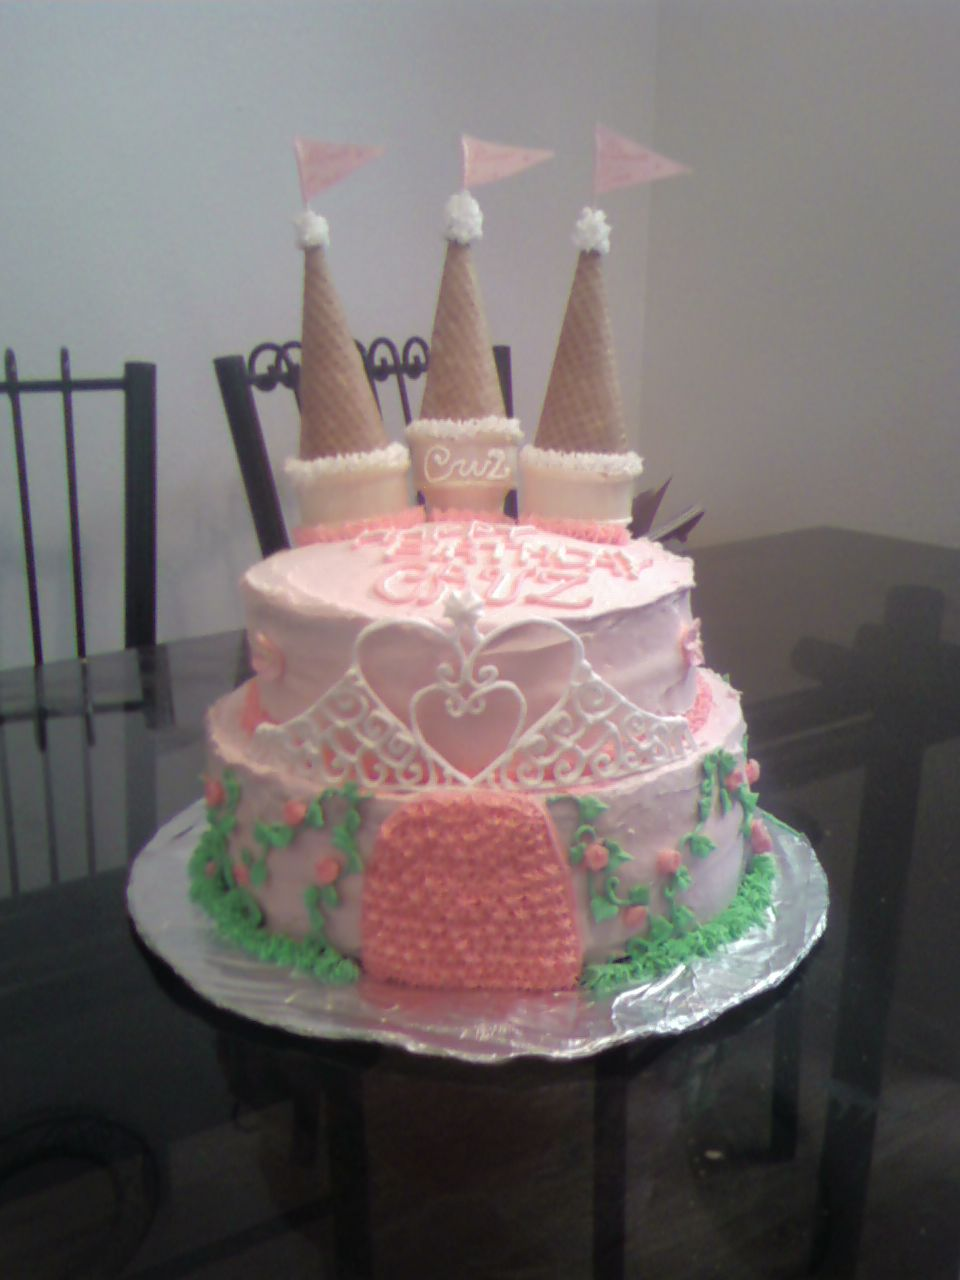 Easy Castle Cakes for Girls http://chrissypcakes.blogspot.com/2011/06/simple-castle-cake-for-little-girl.html